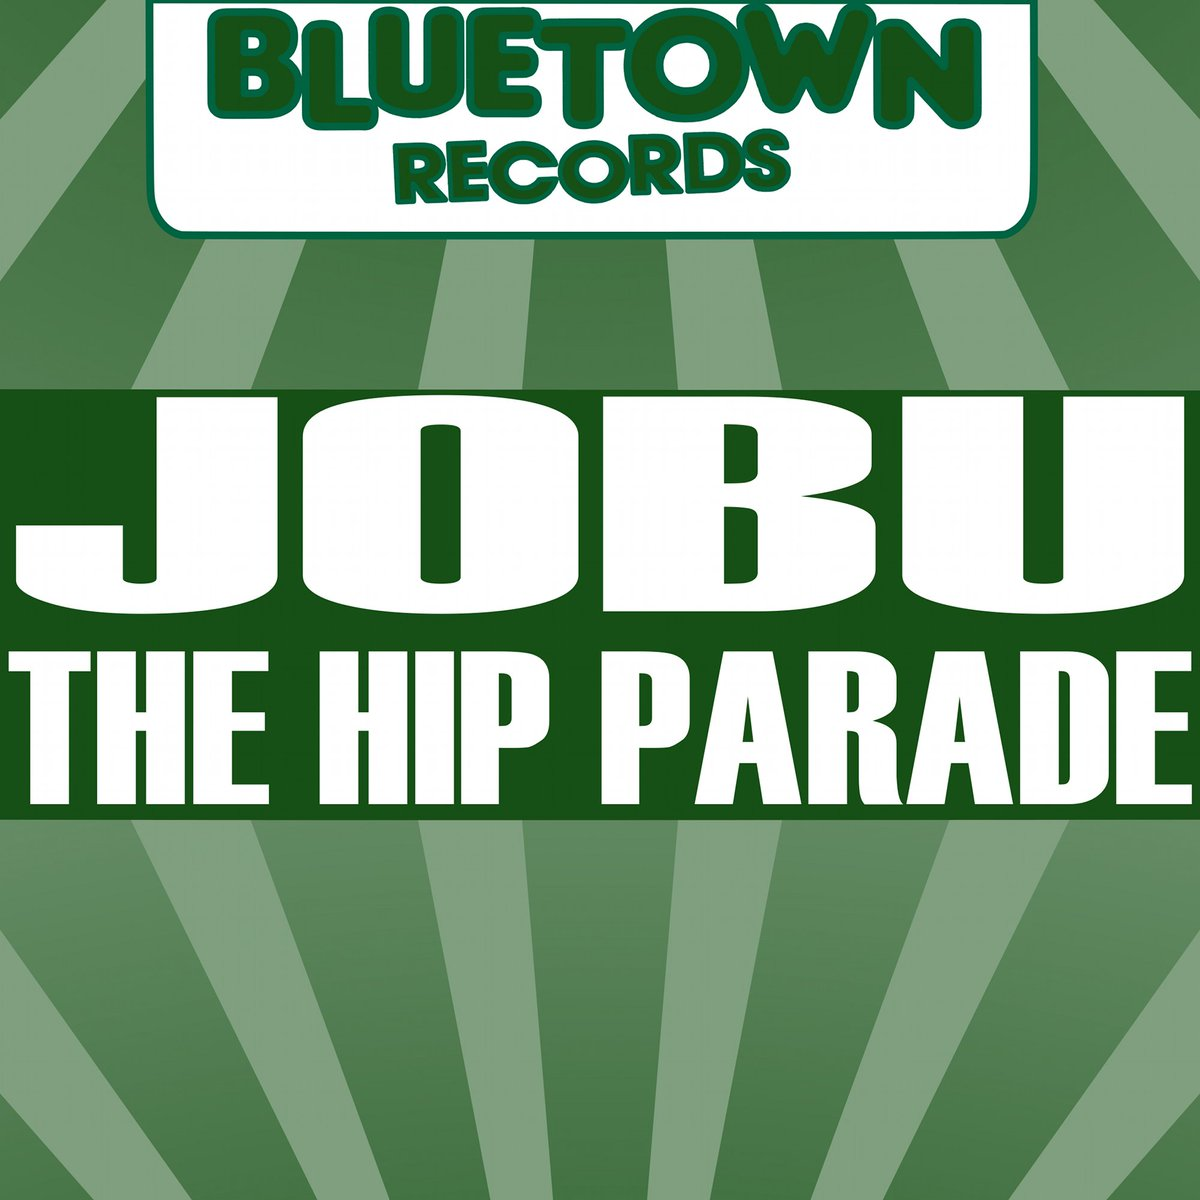 Out now! JoBu &quot;The Hip Parade&quot;  http://www. traxsource.com/title/584093/t he-hip-parade &nbsp; …  #housemusic #realhousemusic <br>http://pic.twitter.com/6c149LWn12